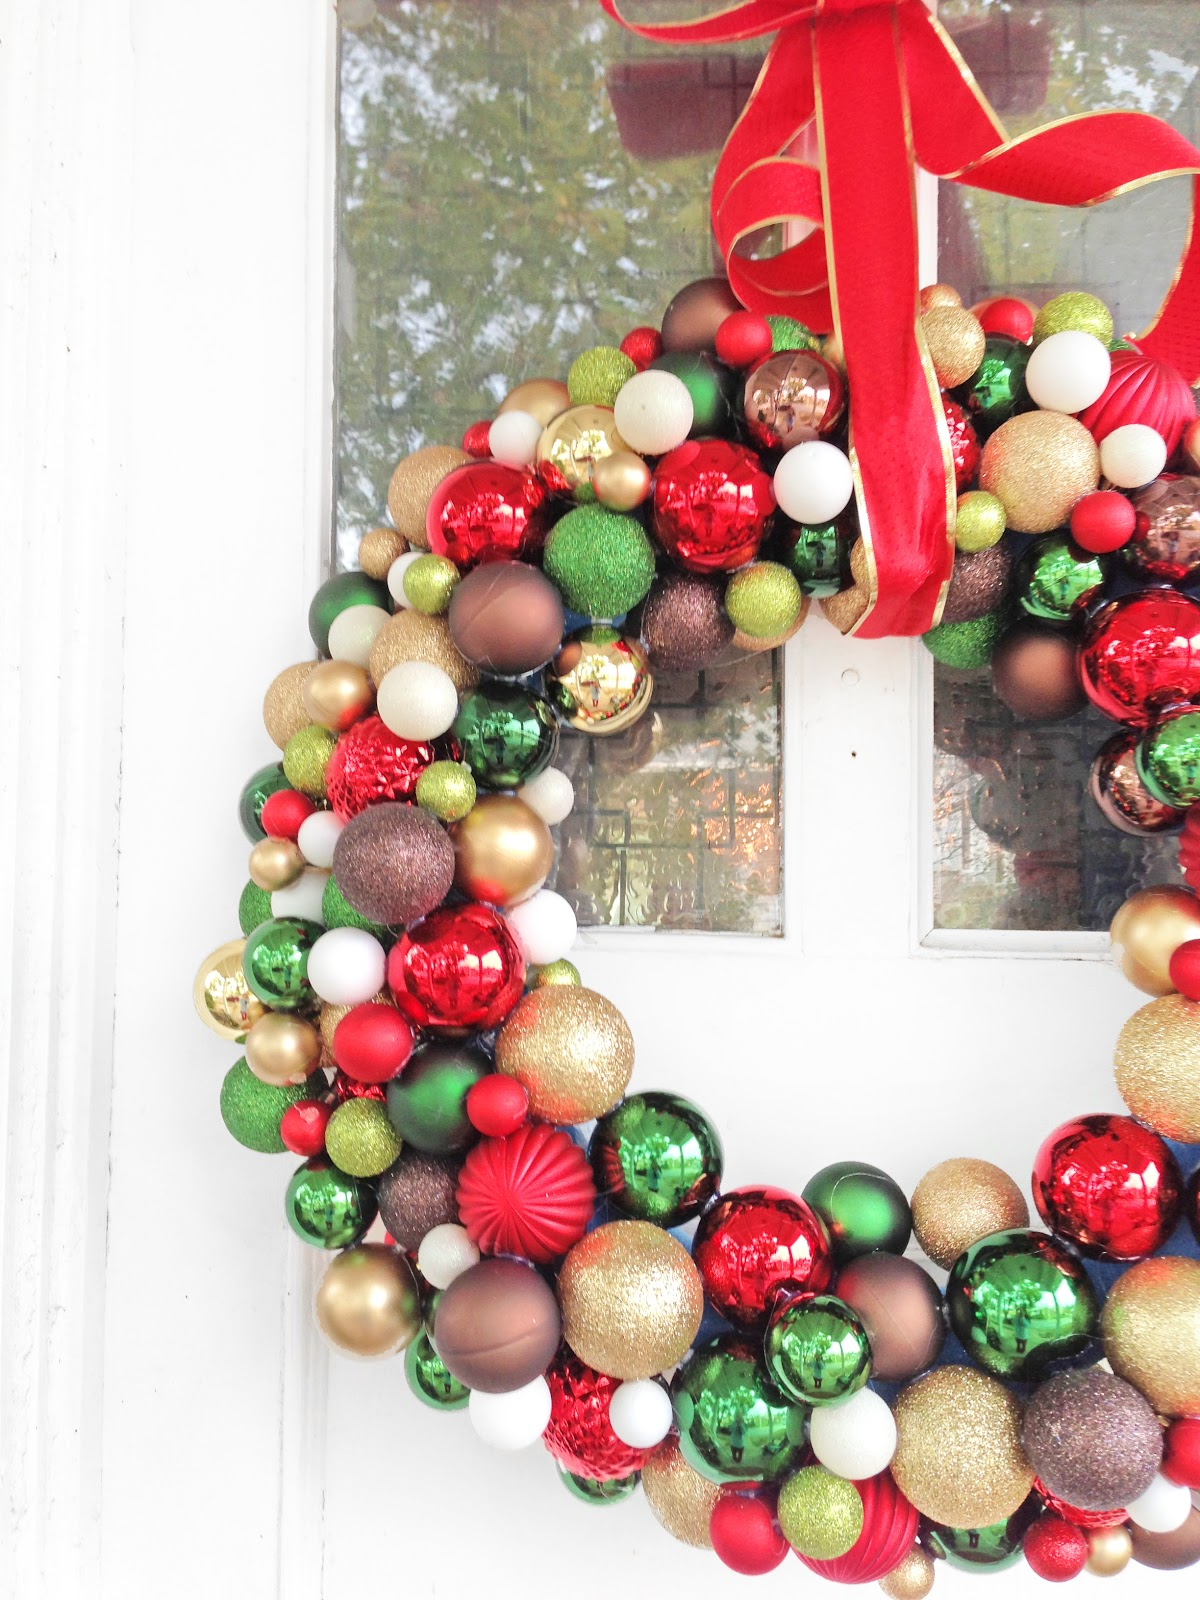 Christmas wreath ornaments - I Went To Walmart And The Only Large Wreaths They Had Were The Traditional Pine Branches Poinsettia Sort Borrrring